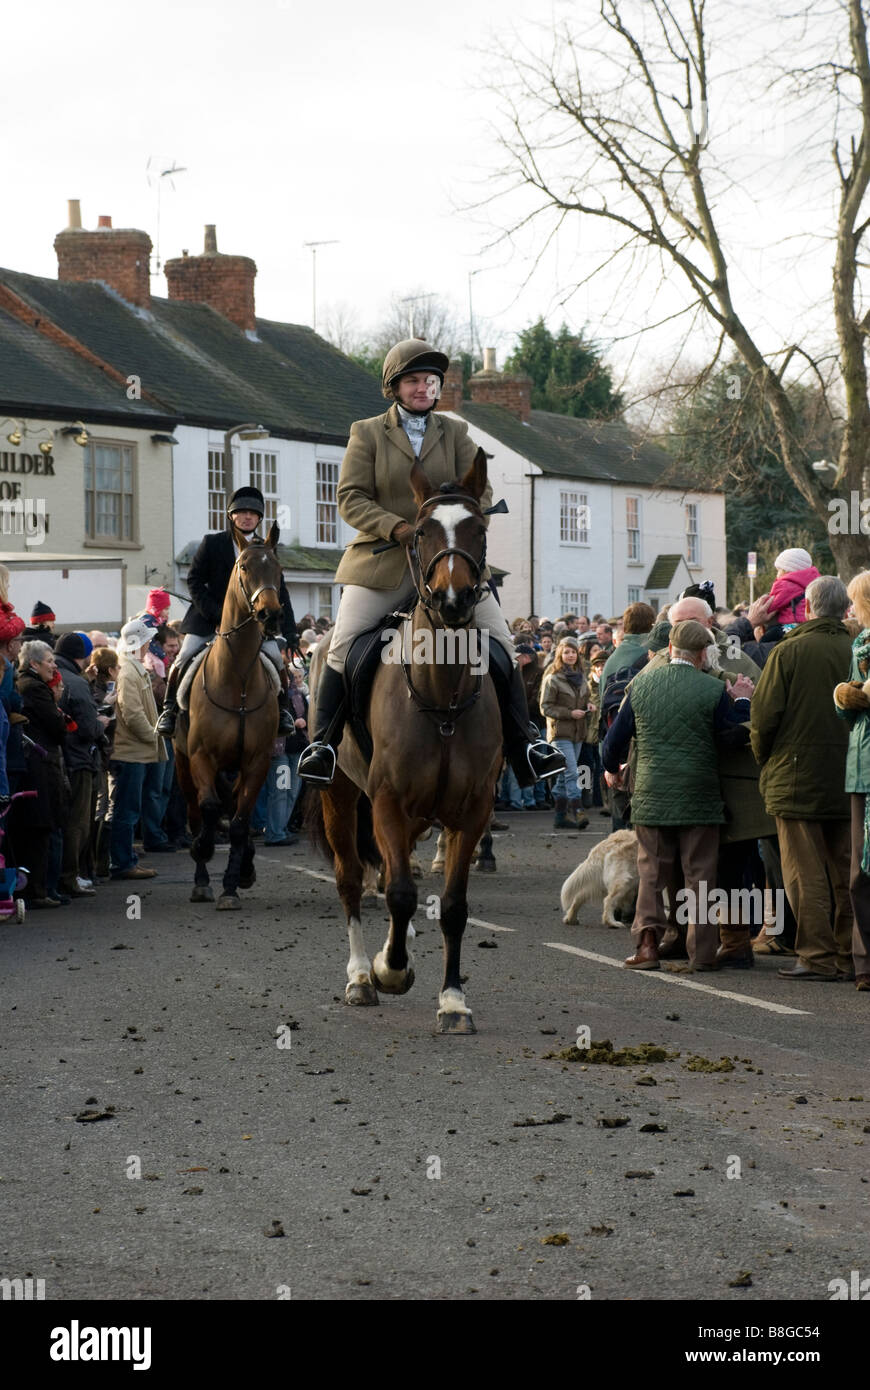 Horses of the Fernie Hunt at the traditional meet on Boxing Day Great Bowden Leicestershire, England - Stock Image